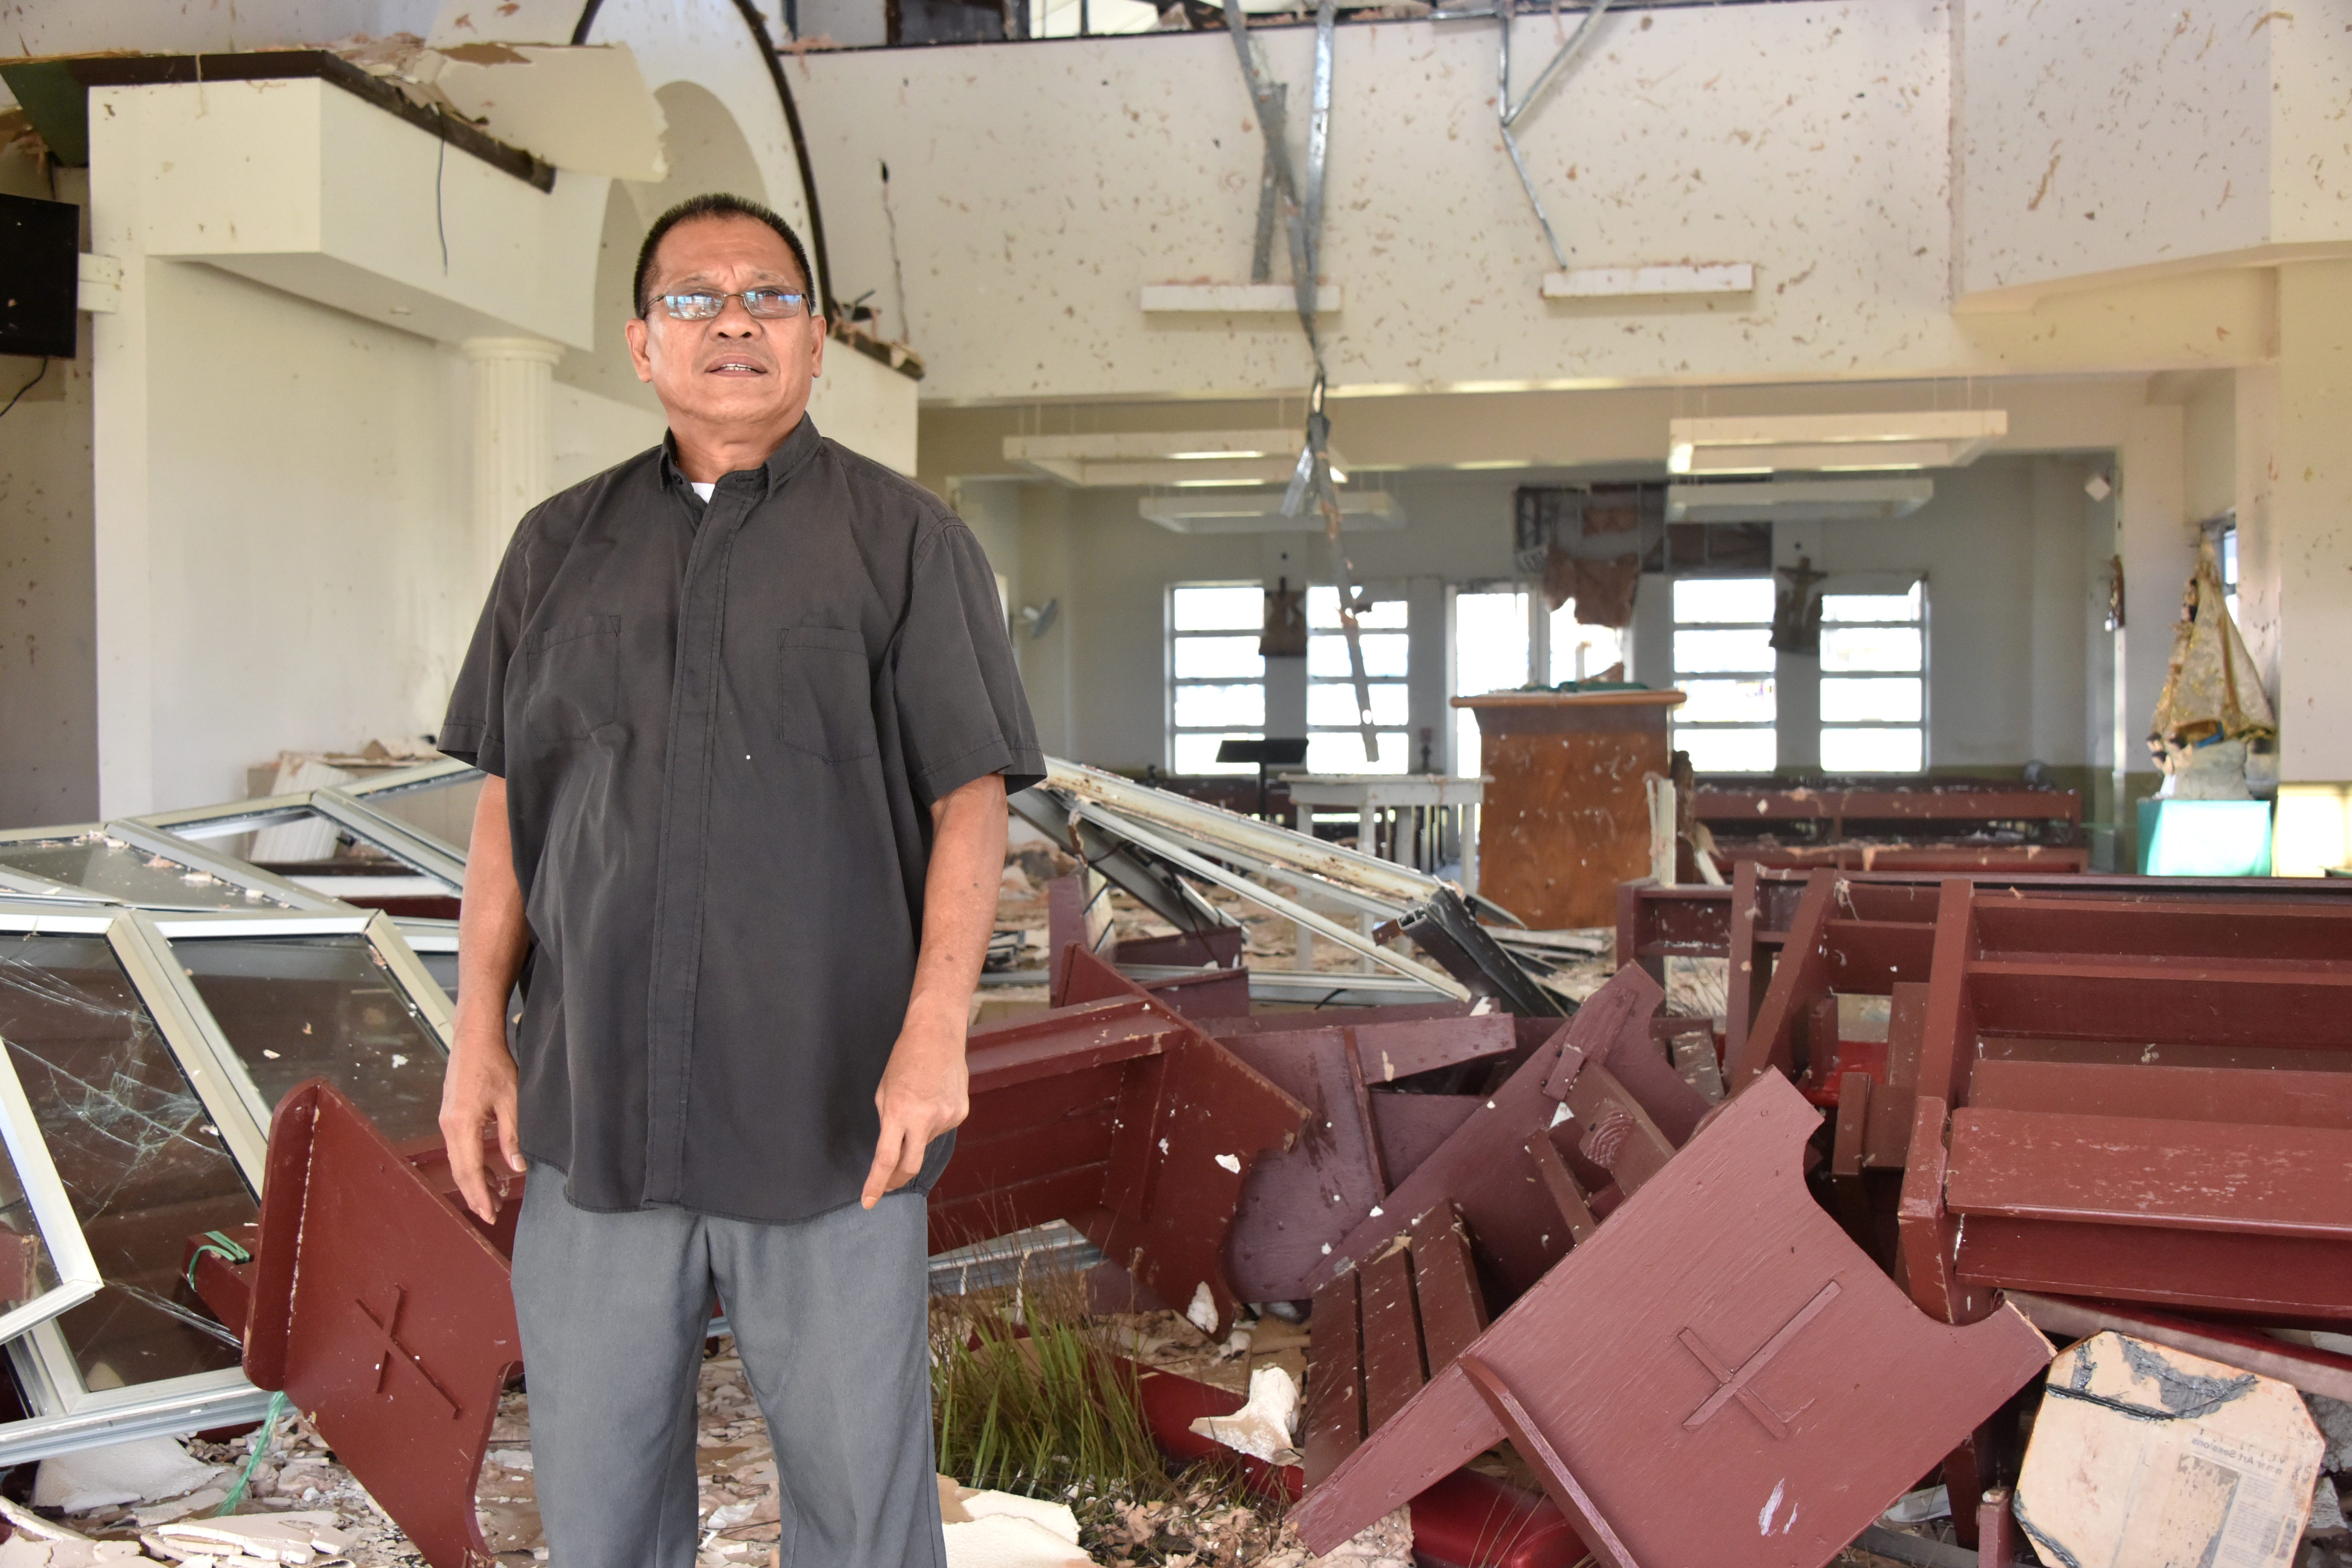 Father Rey Rosal stands inside Tinian's San Jose Catholic Church on Nov. 3, 2018 The island's only church was destroyed by Super Typhoon Yutu, which struck the island on Oct. 24 and 25.